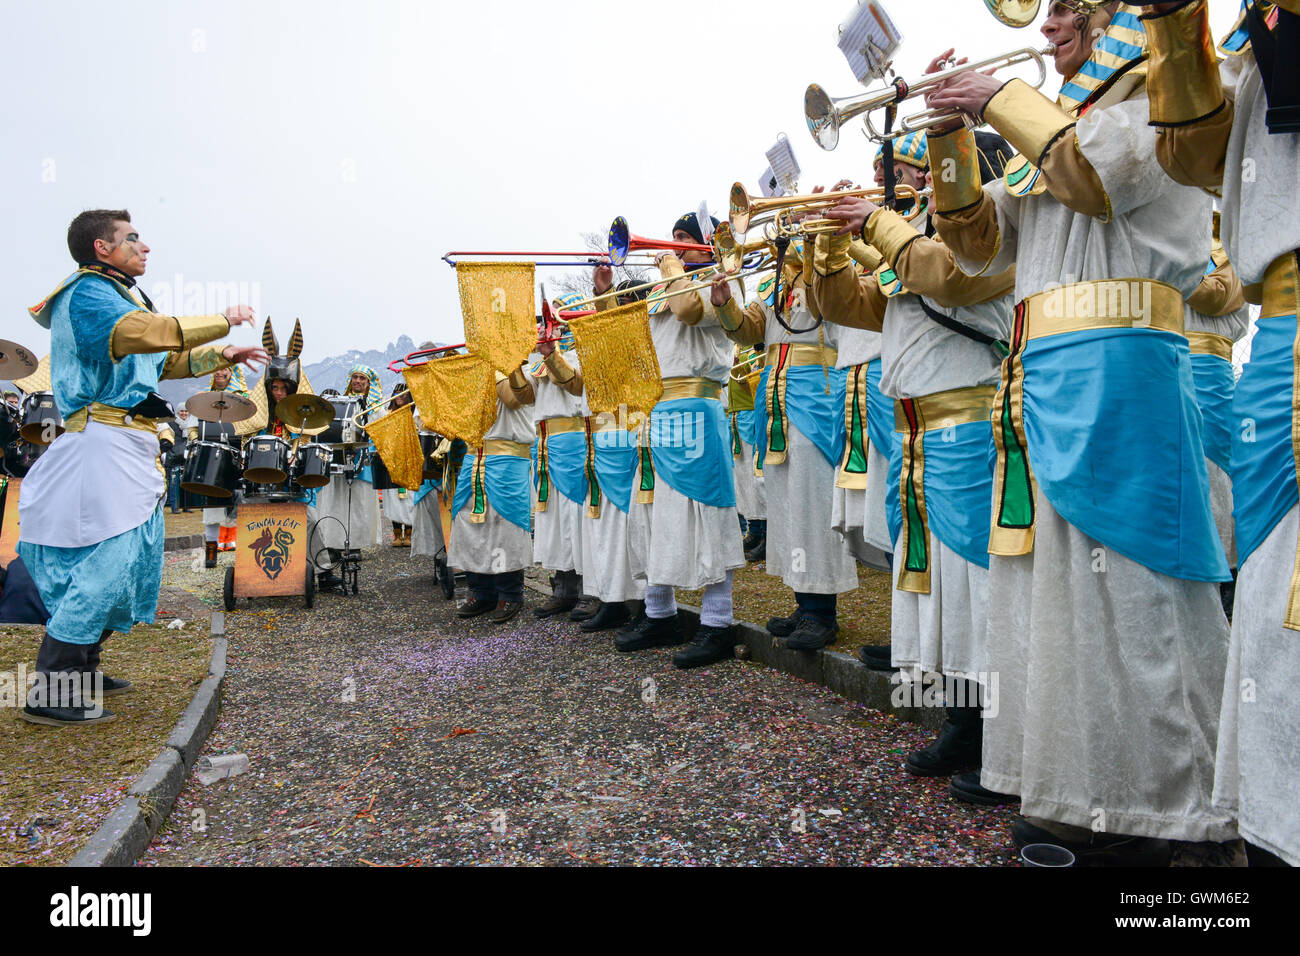 Tesserete, Switzerland - 13 February 2016: people playing music at the carnival of Tesserete on the italian part Stock Photo